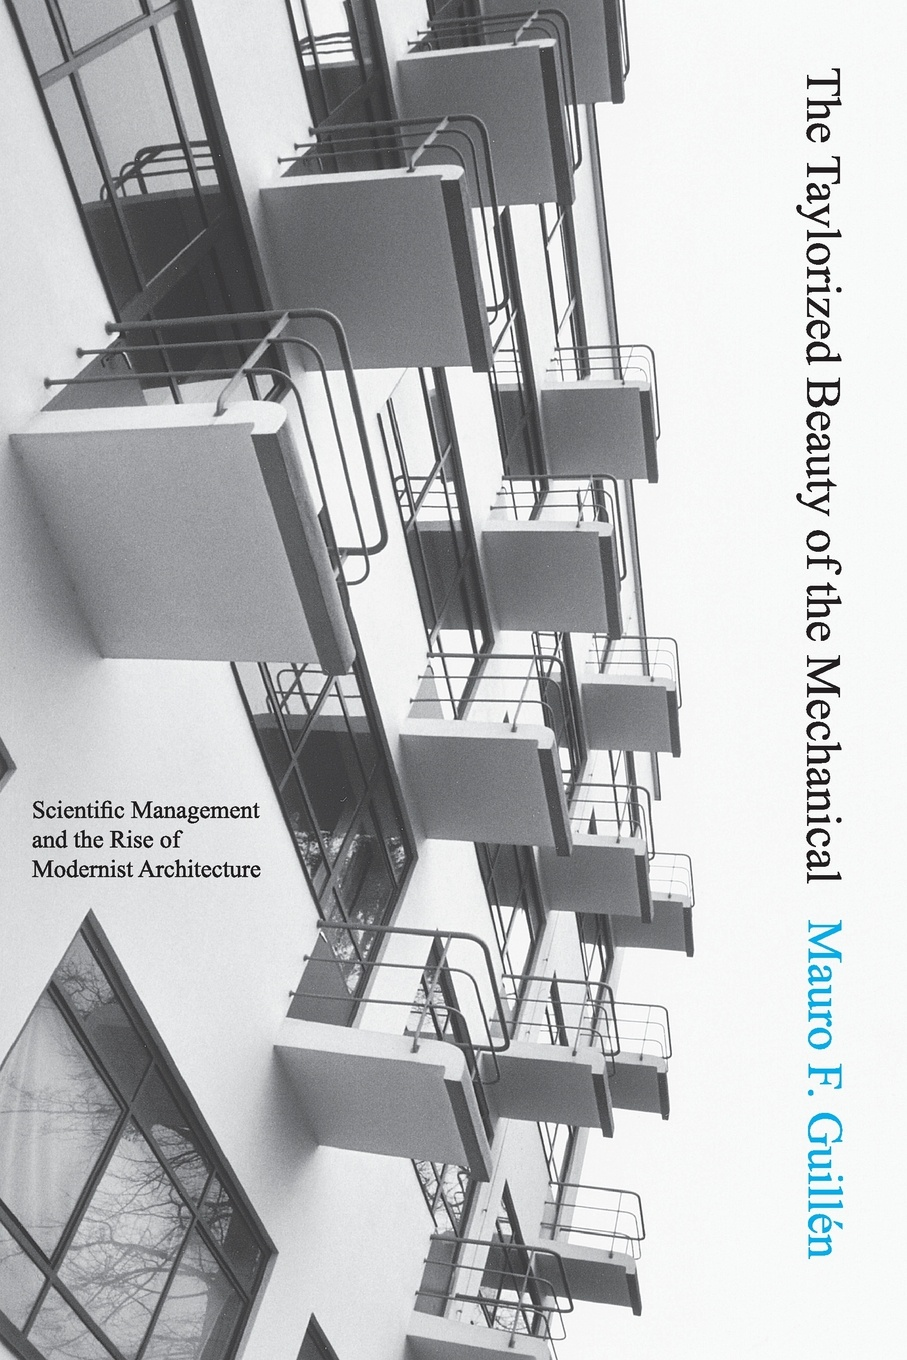 Mauro F. Guillén The Taylorized Beauty of the Mechanical. Scientific Management and the Rise of Modernist Architecture frederick taylor winslow the principles of scientific management